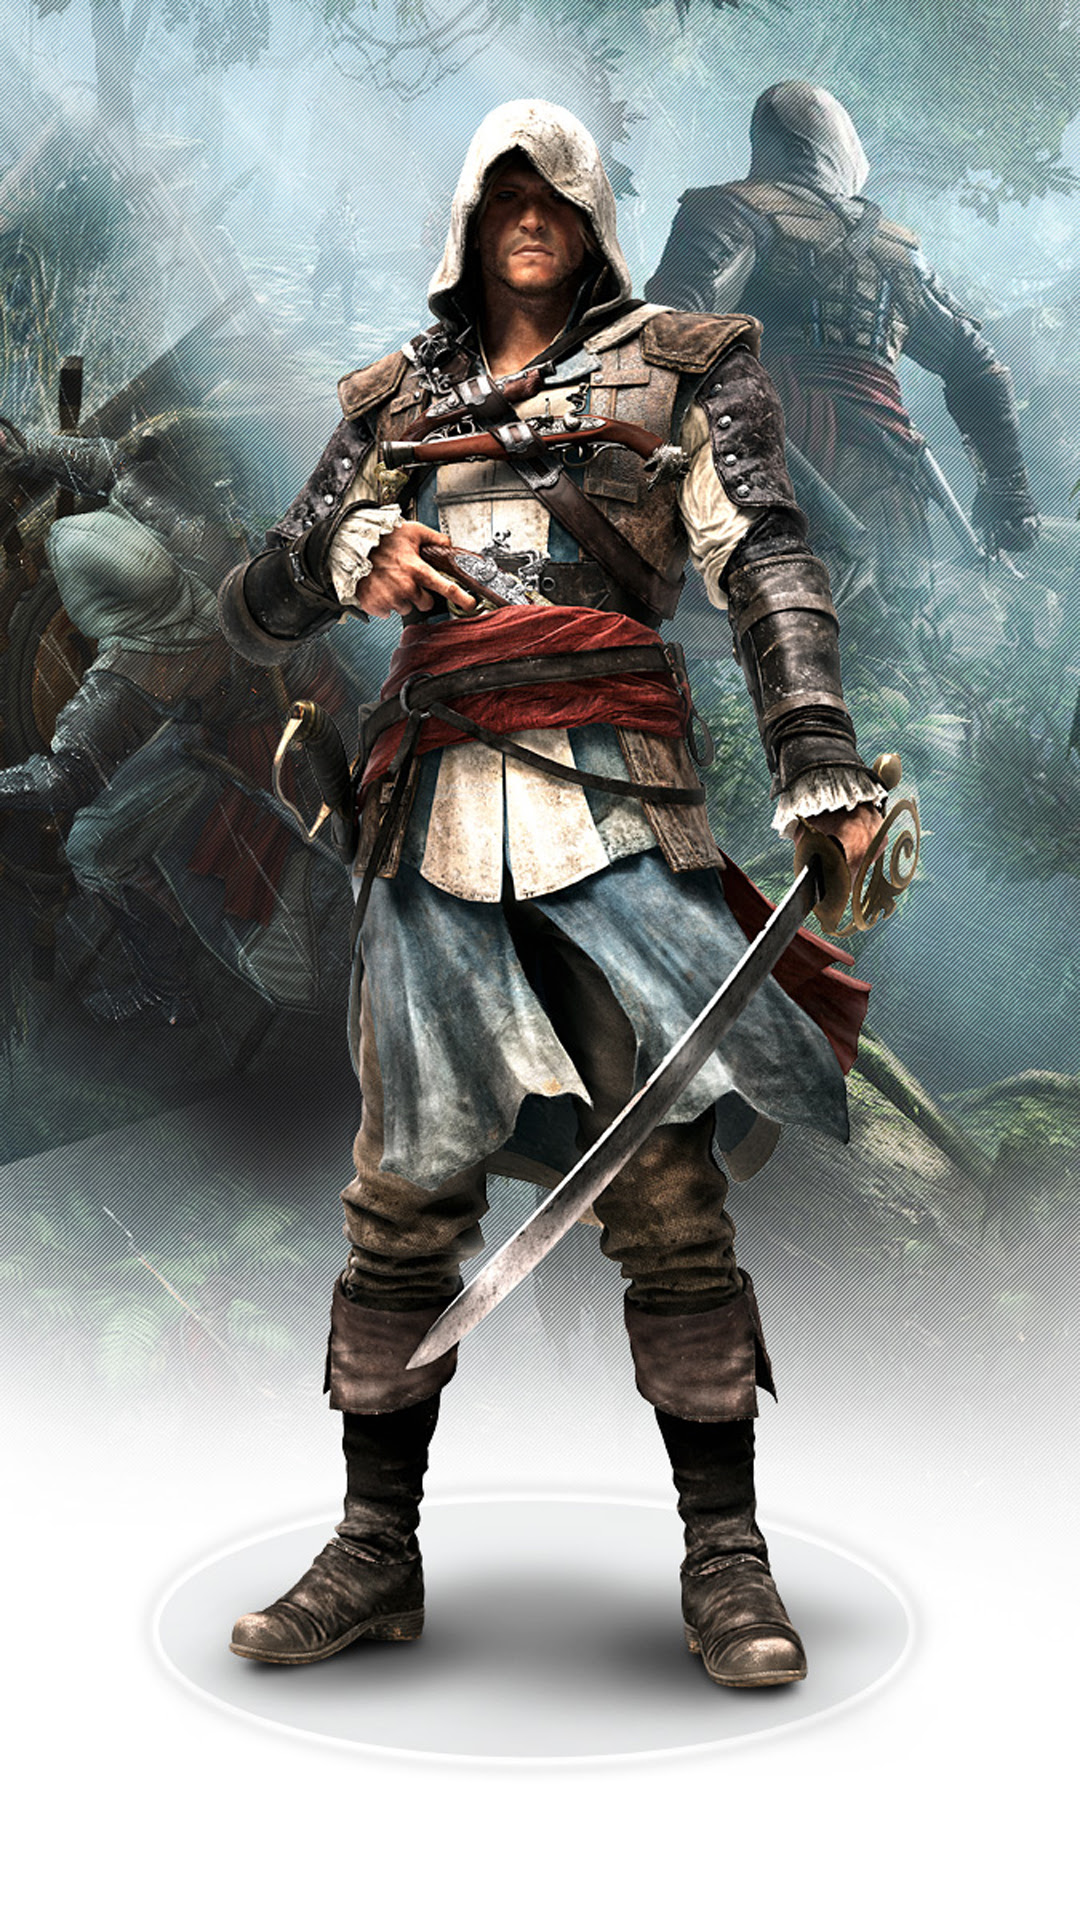 Assassins Creed 4 Htc One Wallpaper Best Htc One Wallpapers